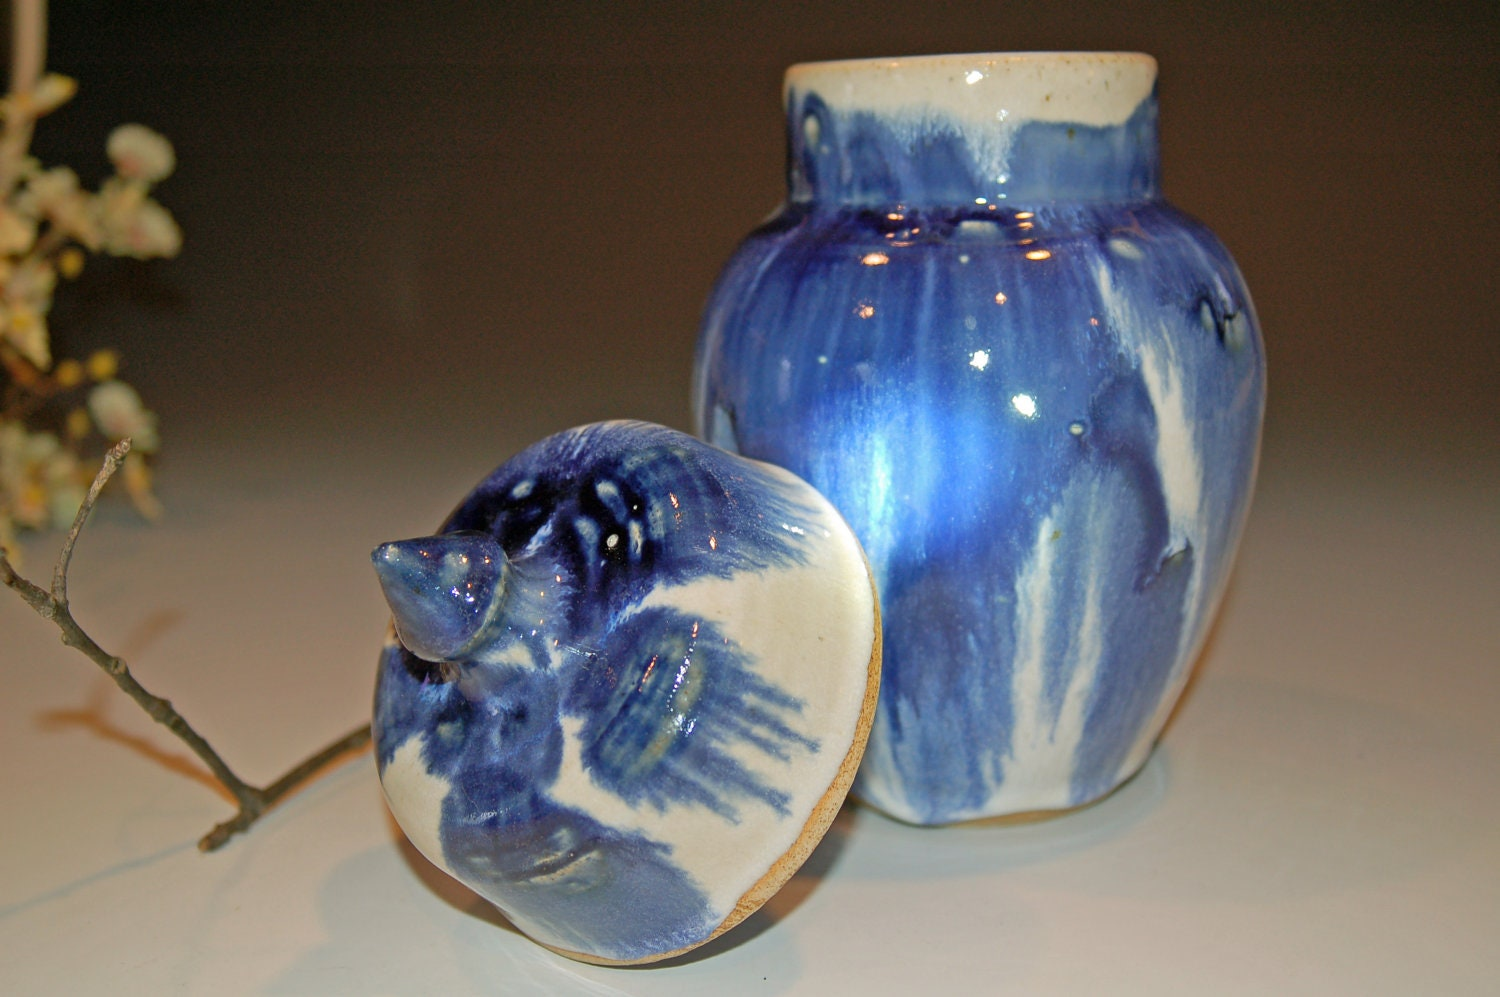 Blue And White Ceramic Cookie Jar Ceramics And Pottery Home